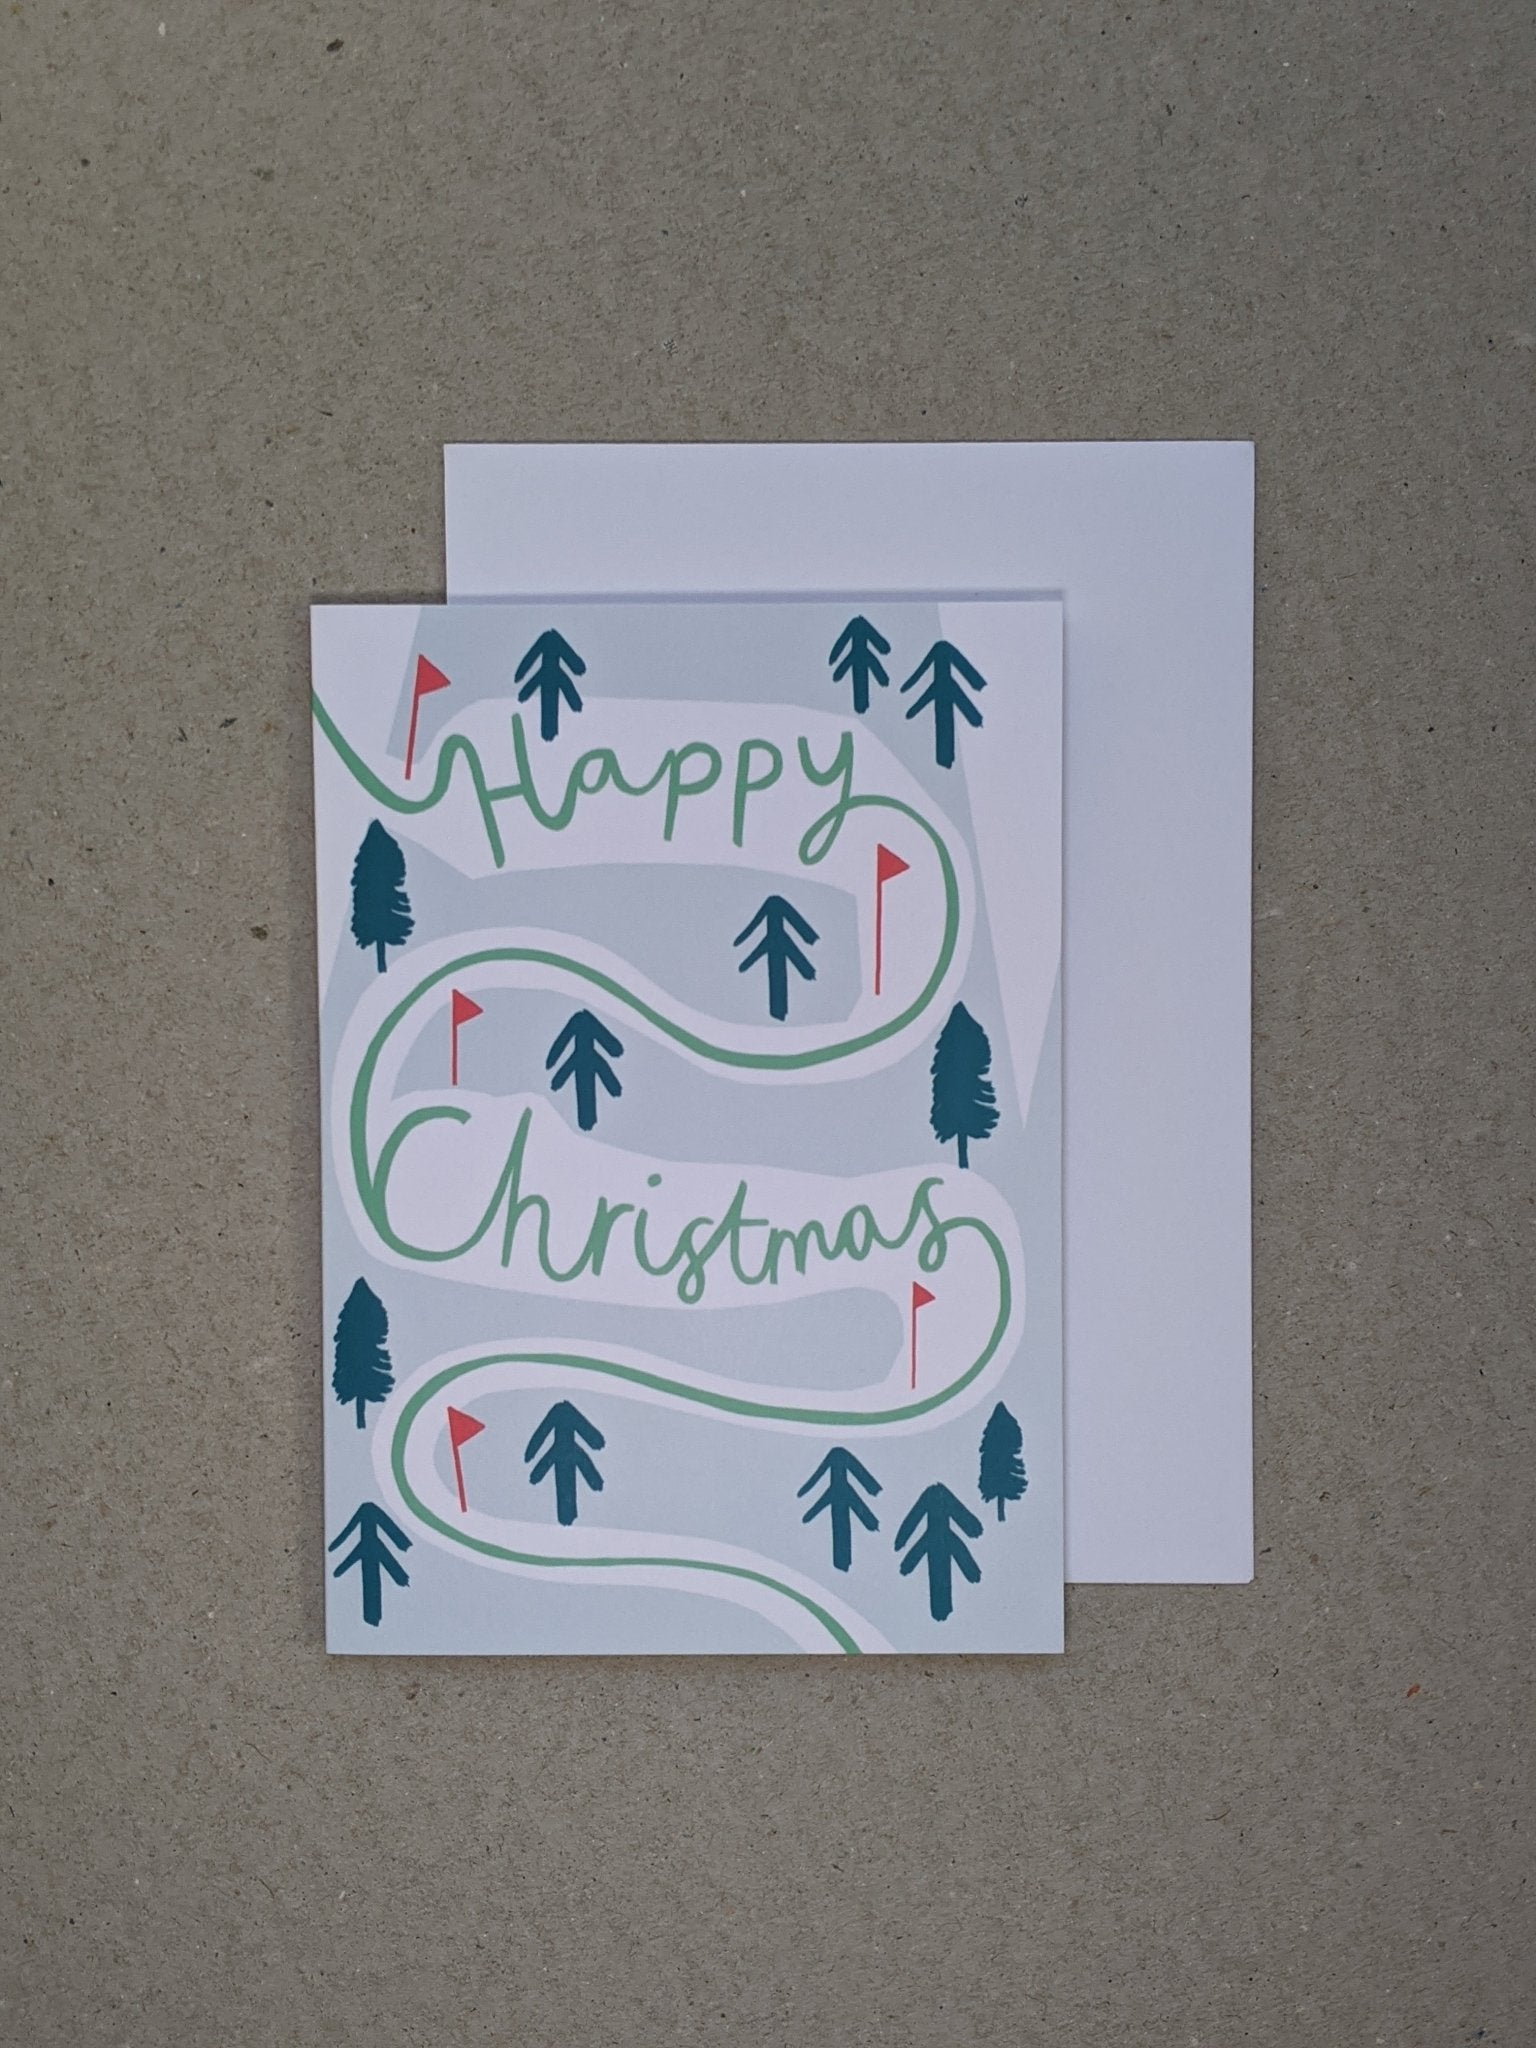 Happy Christmas Slalom Greetings Card - The Stationery Cupboard